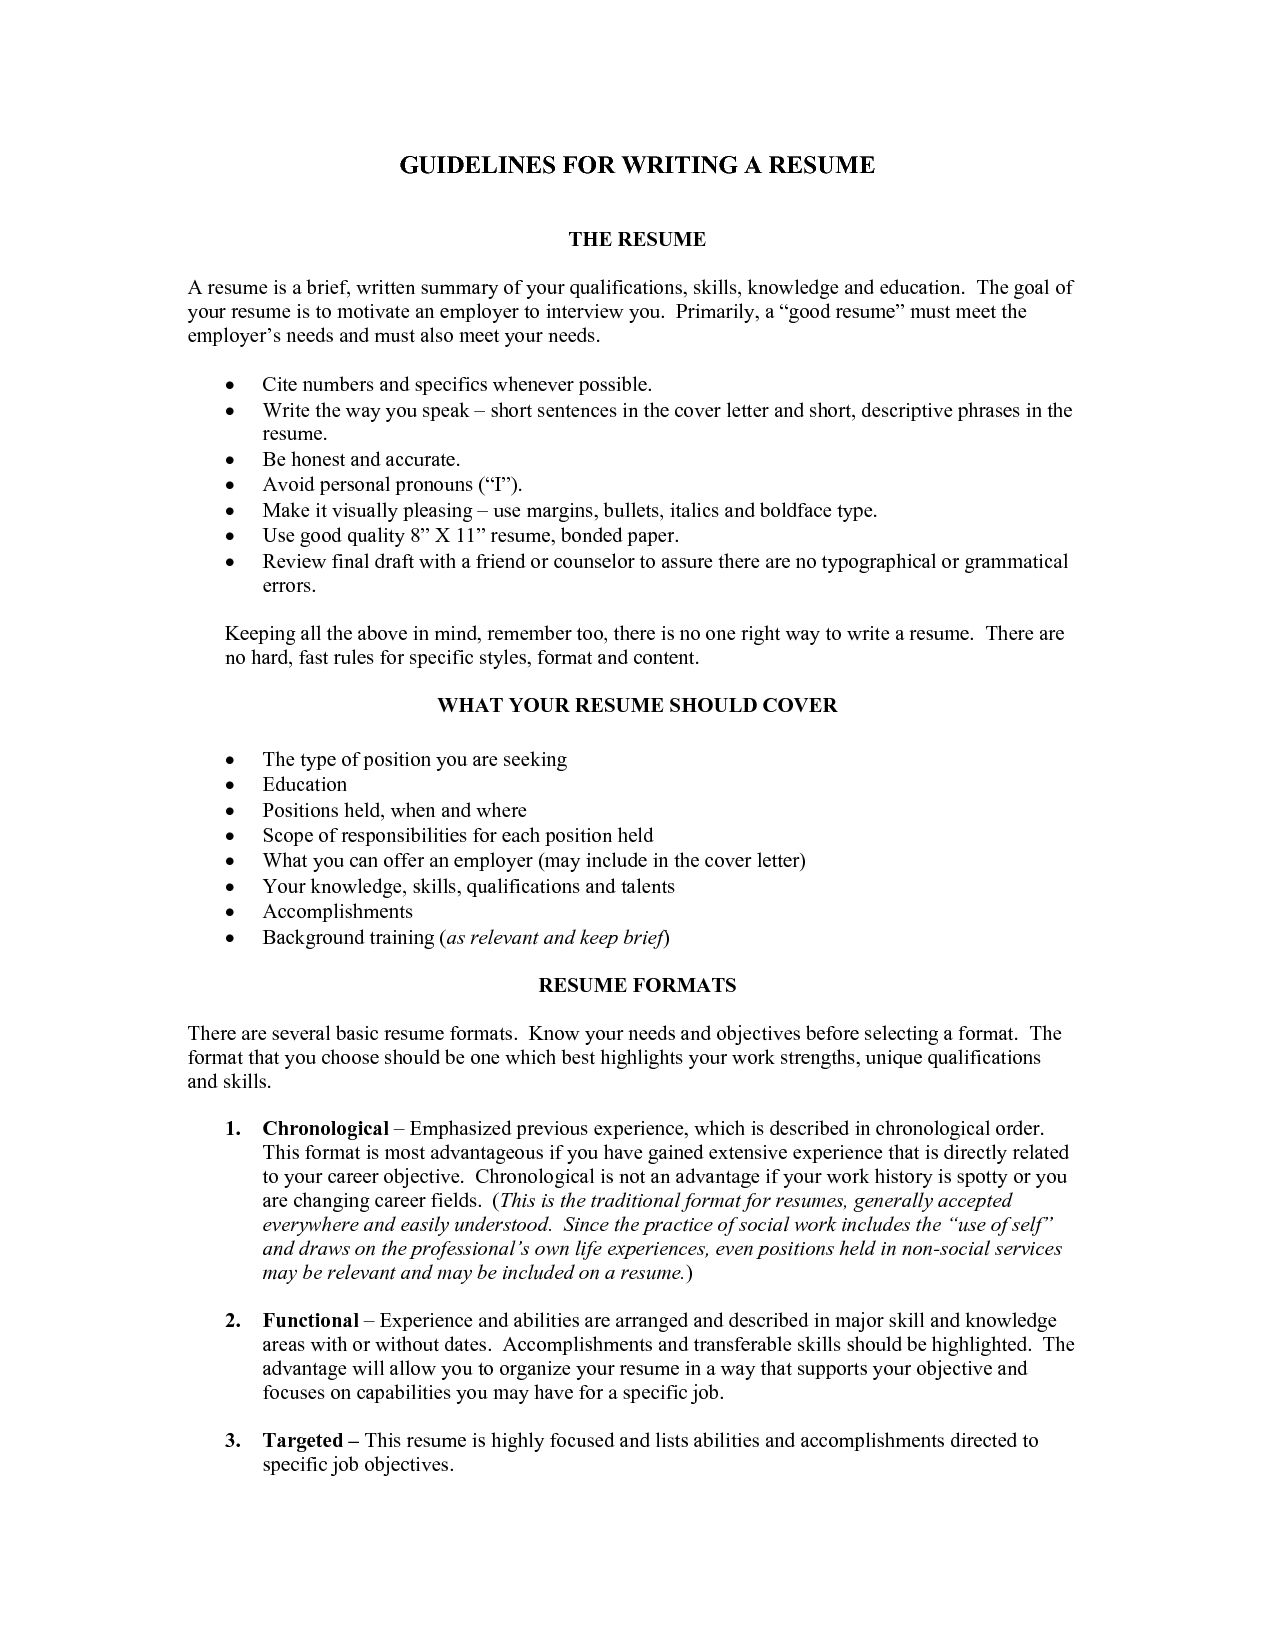 Resume Guidelines Letters Free Sample Letters Great